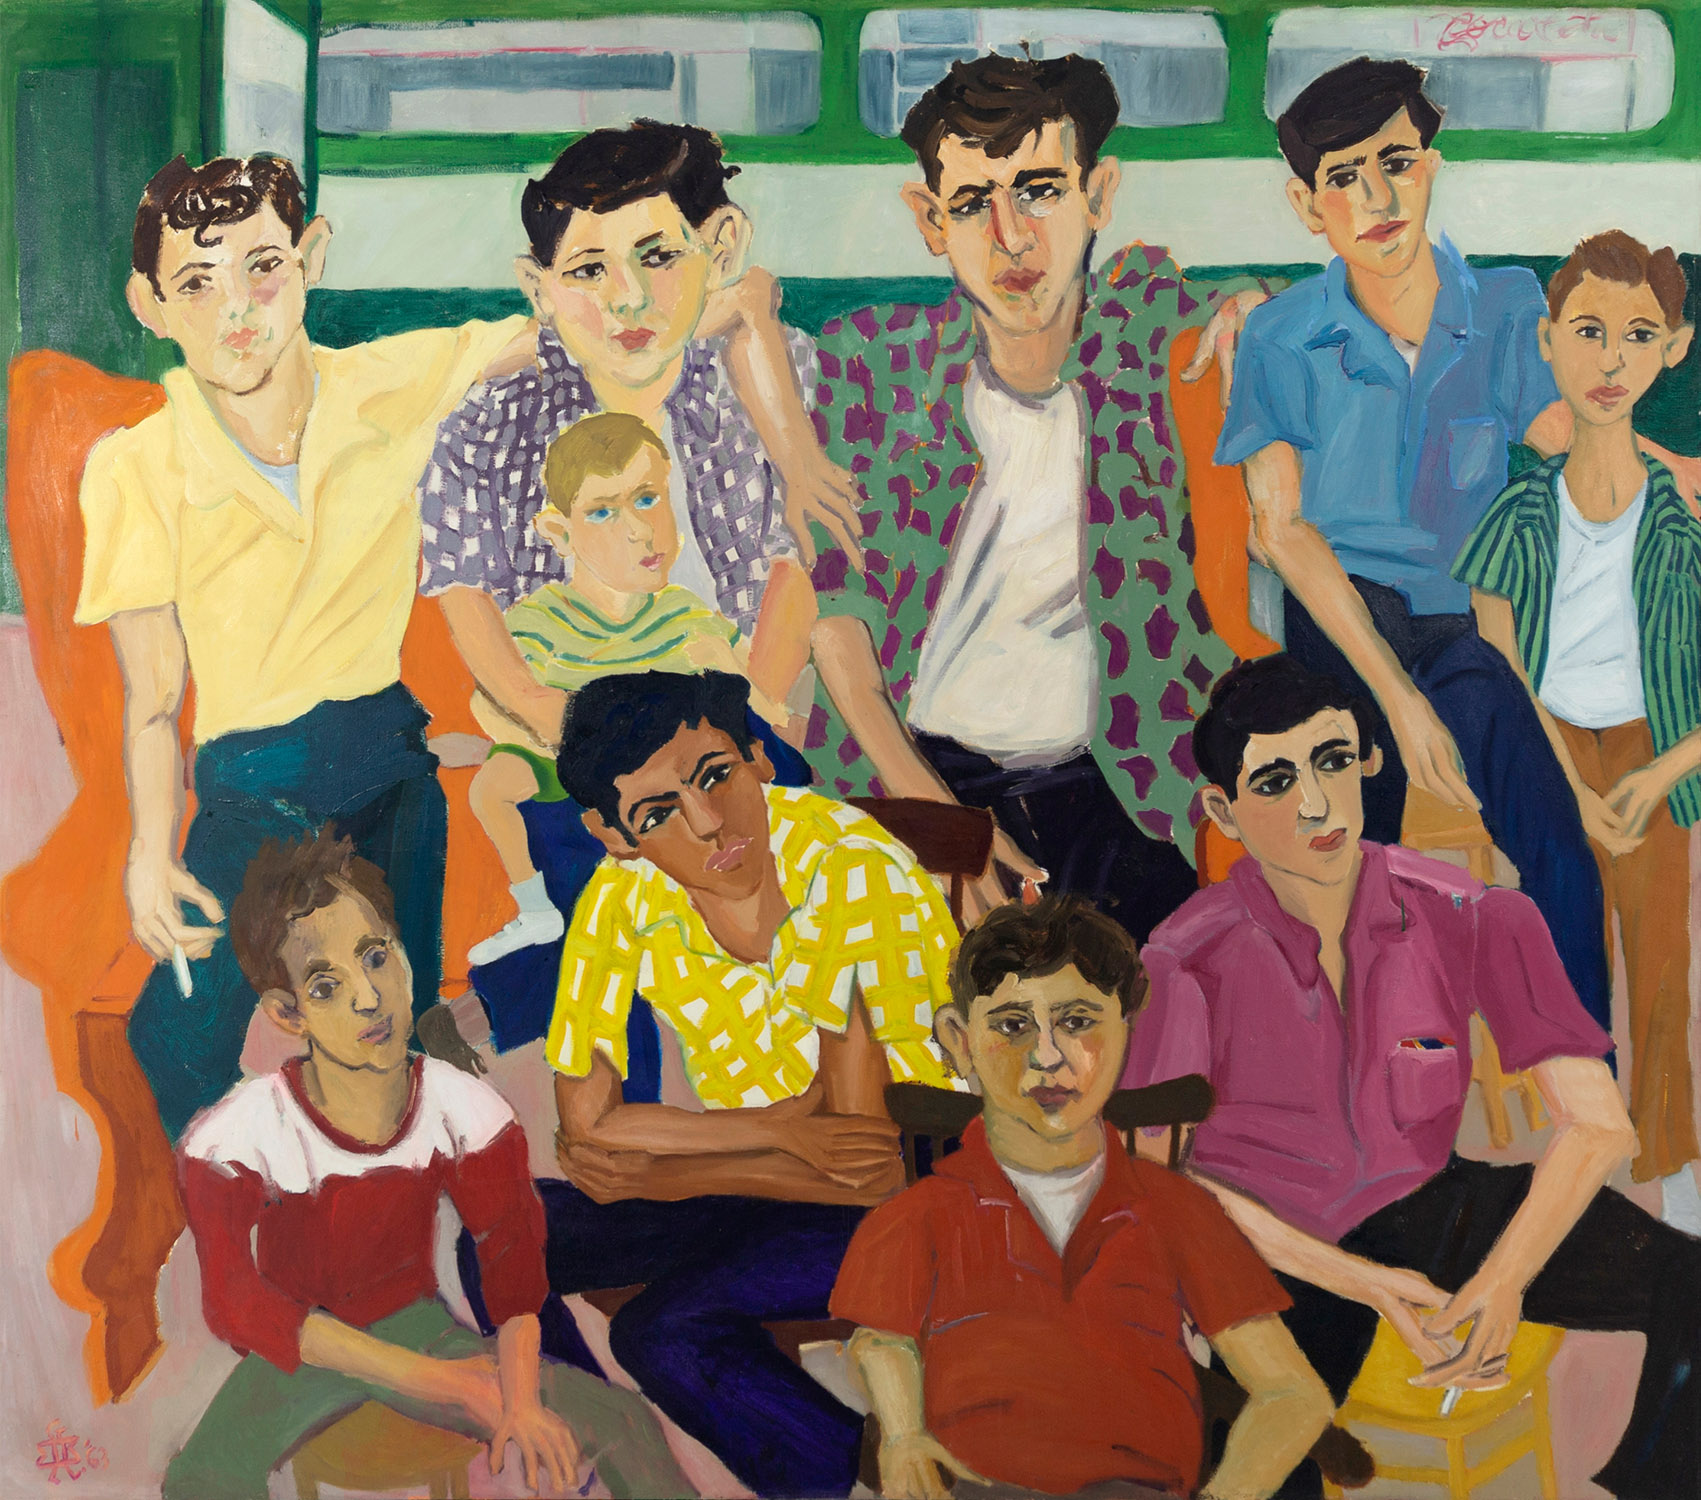 Mimi Gross, Grand Street Boys, 1963, oil on canvas, 60 x 70 1/8 inches